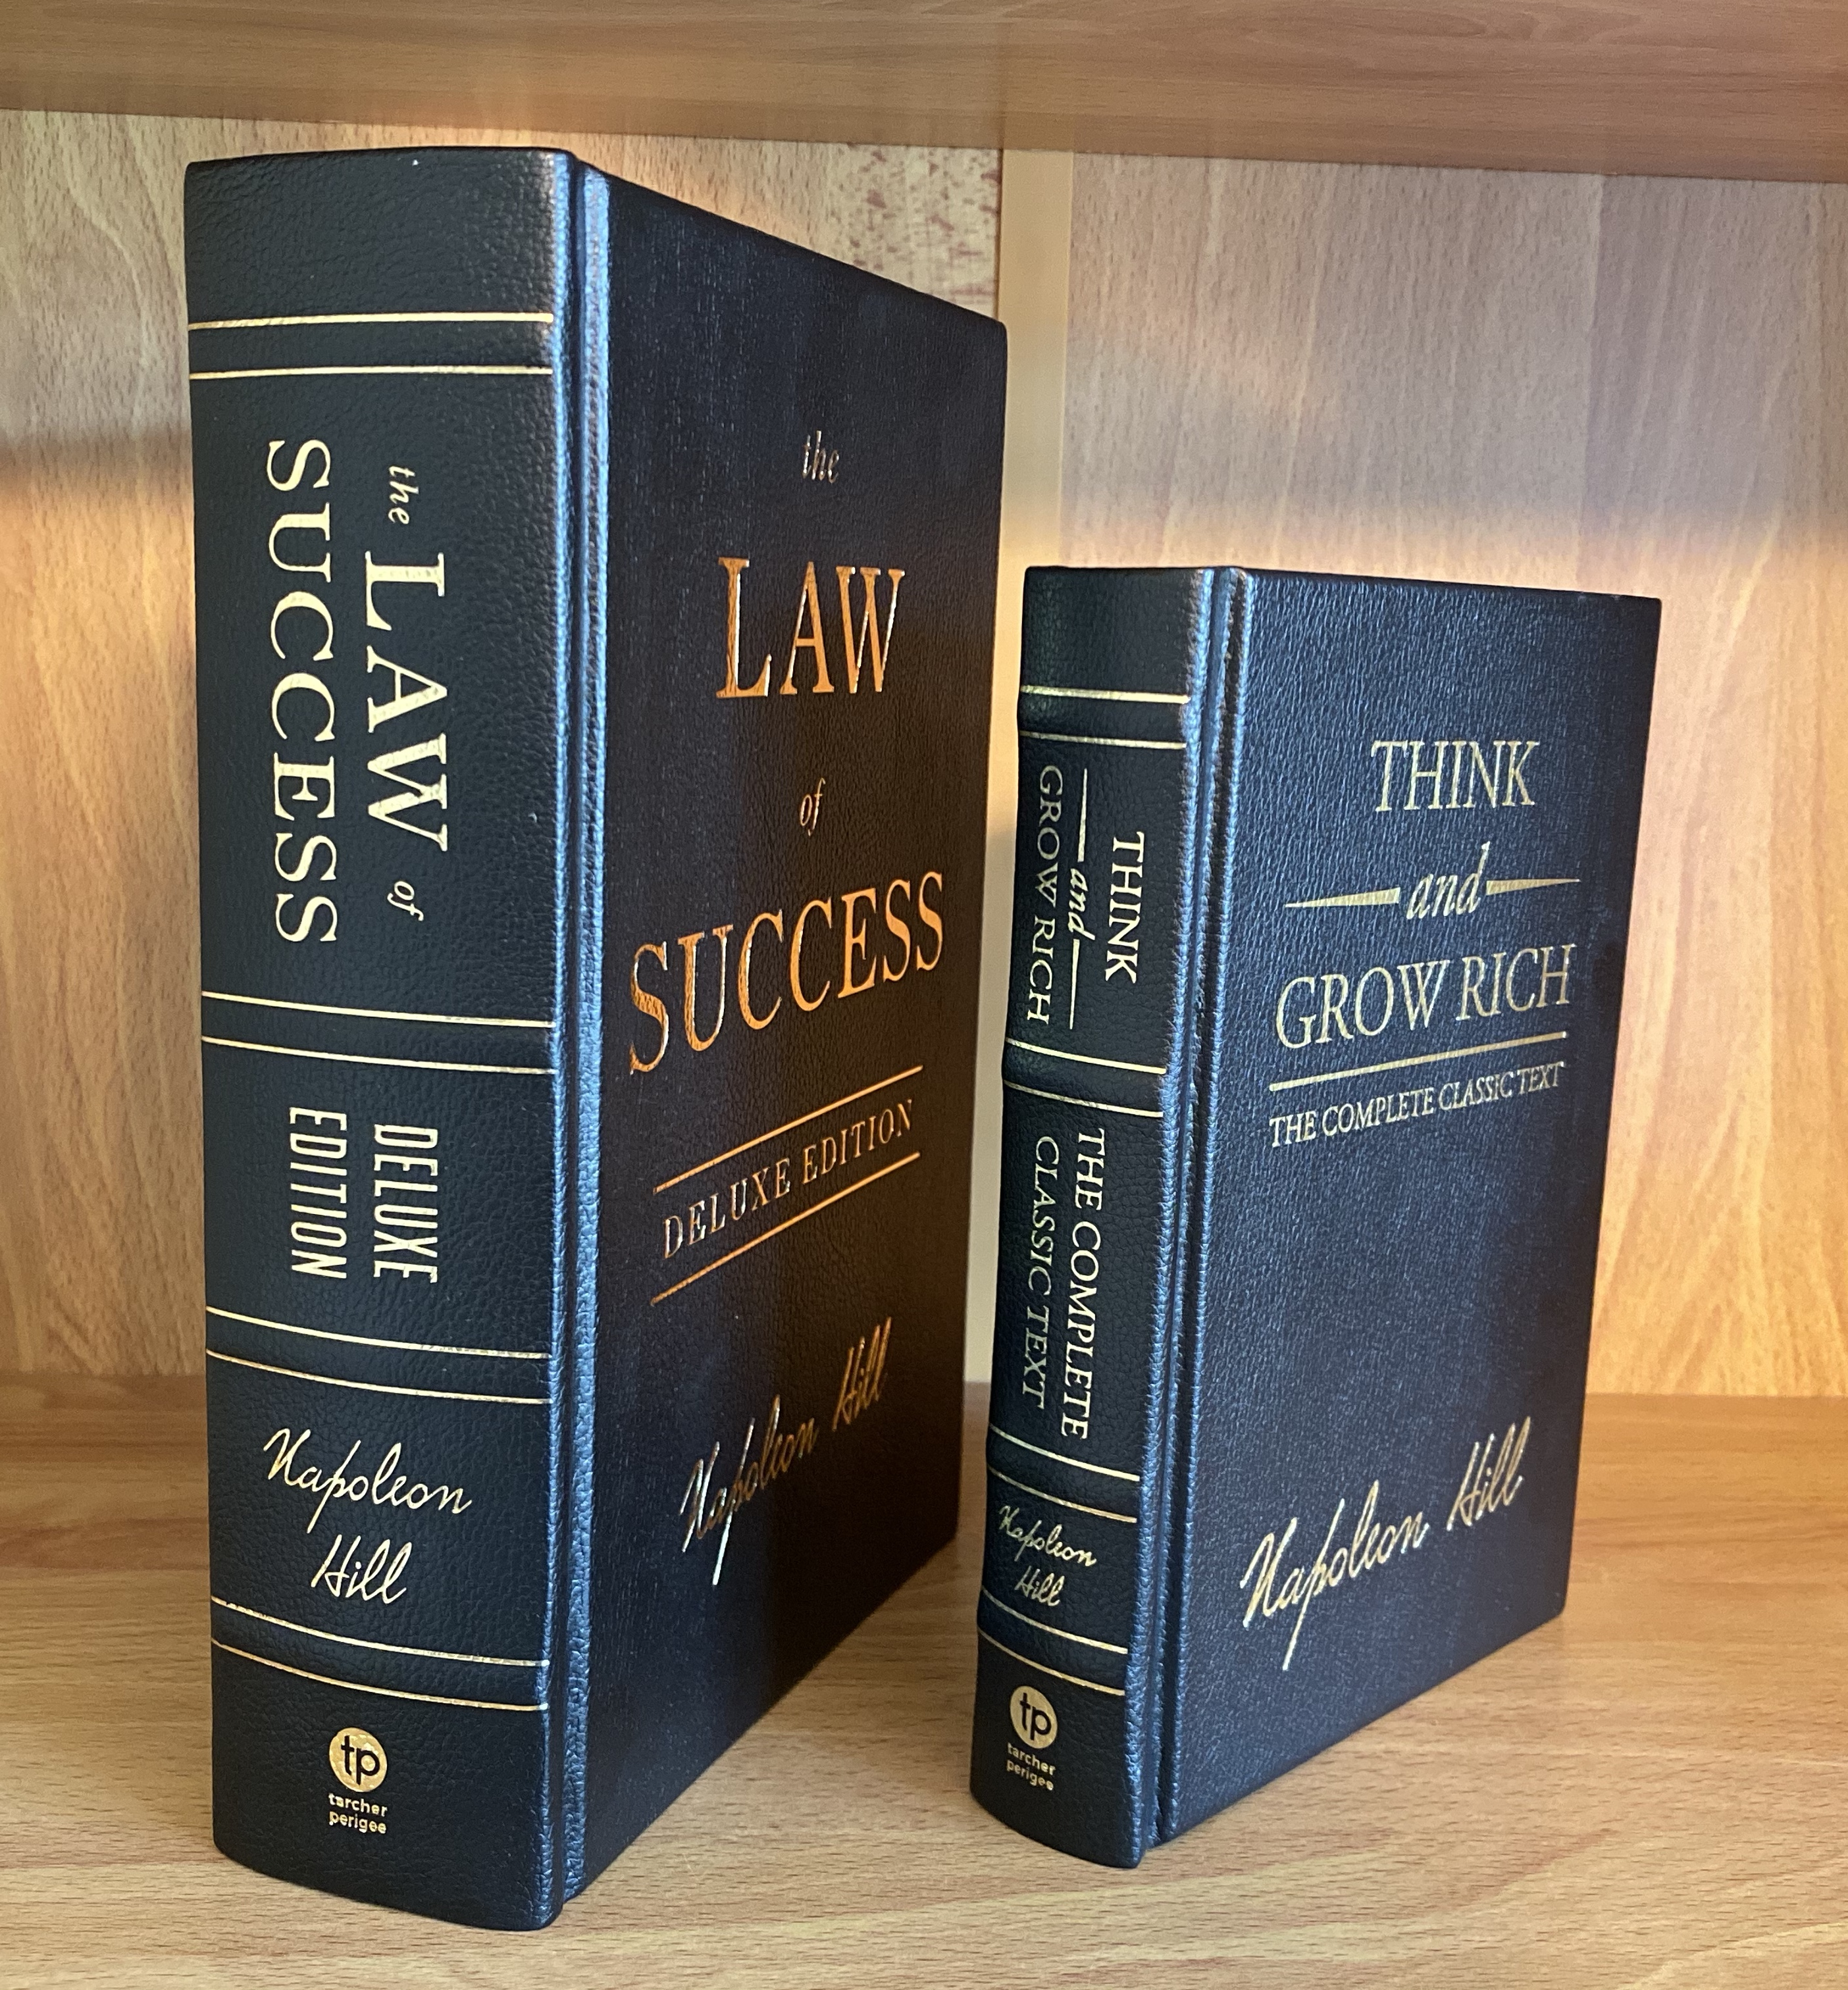 Think and Grow Rich Deluxe Edition Set by Napoleon Hill